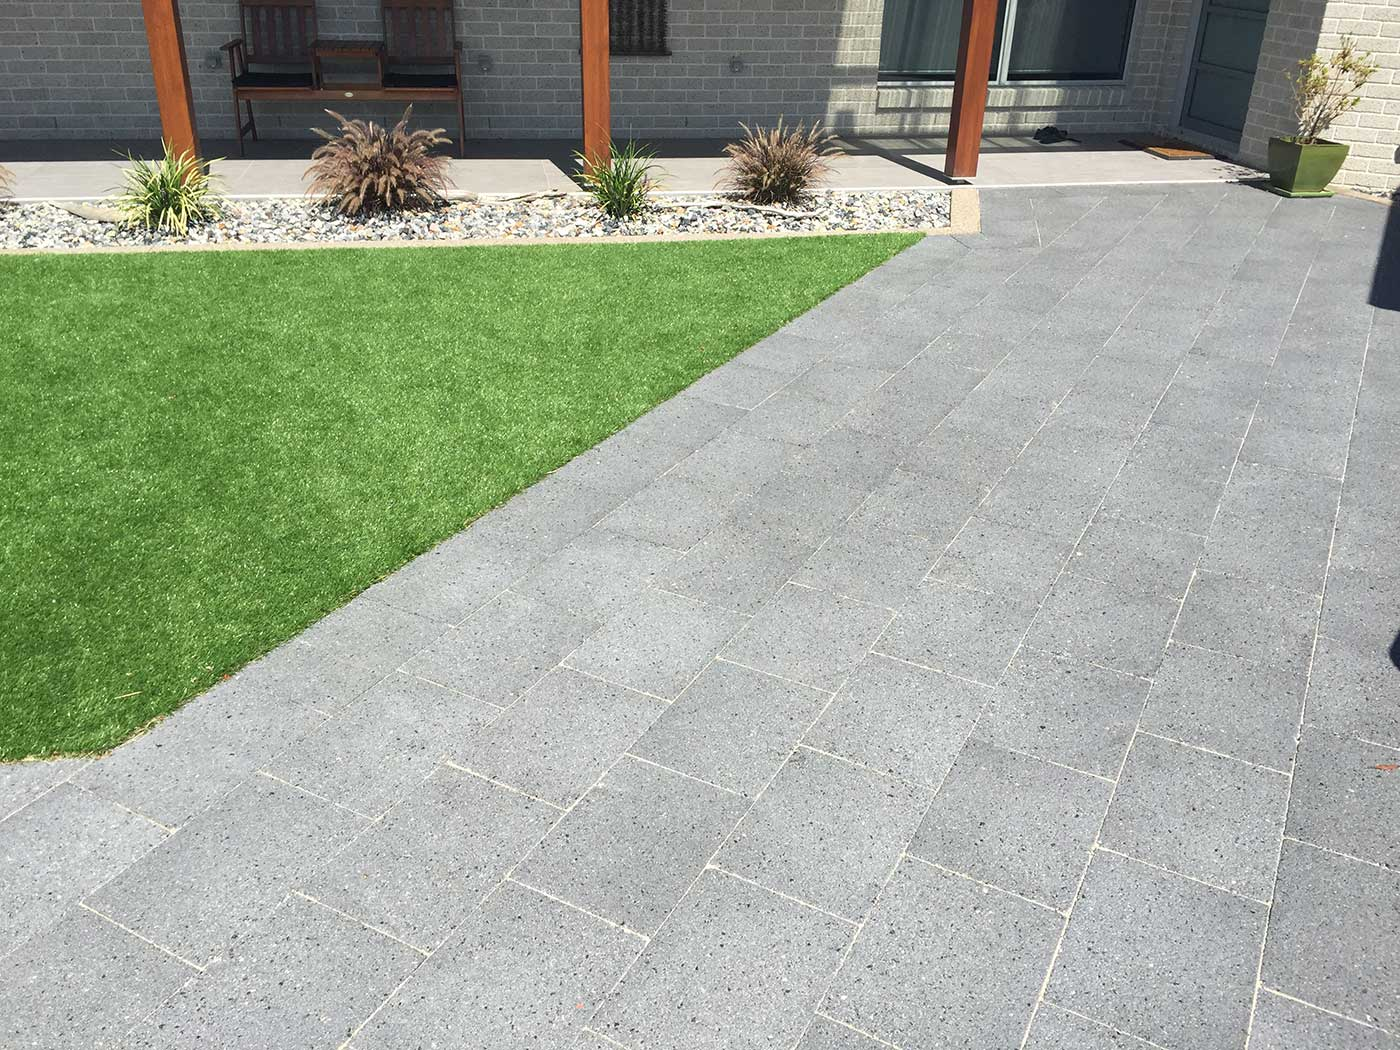 Island block paving exposed aggregate pavers for Paver installation adelaide